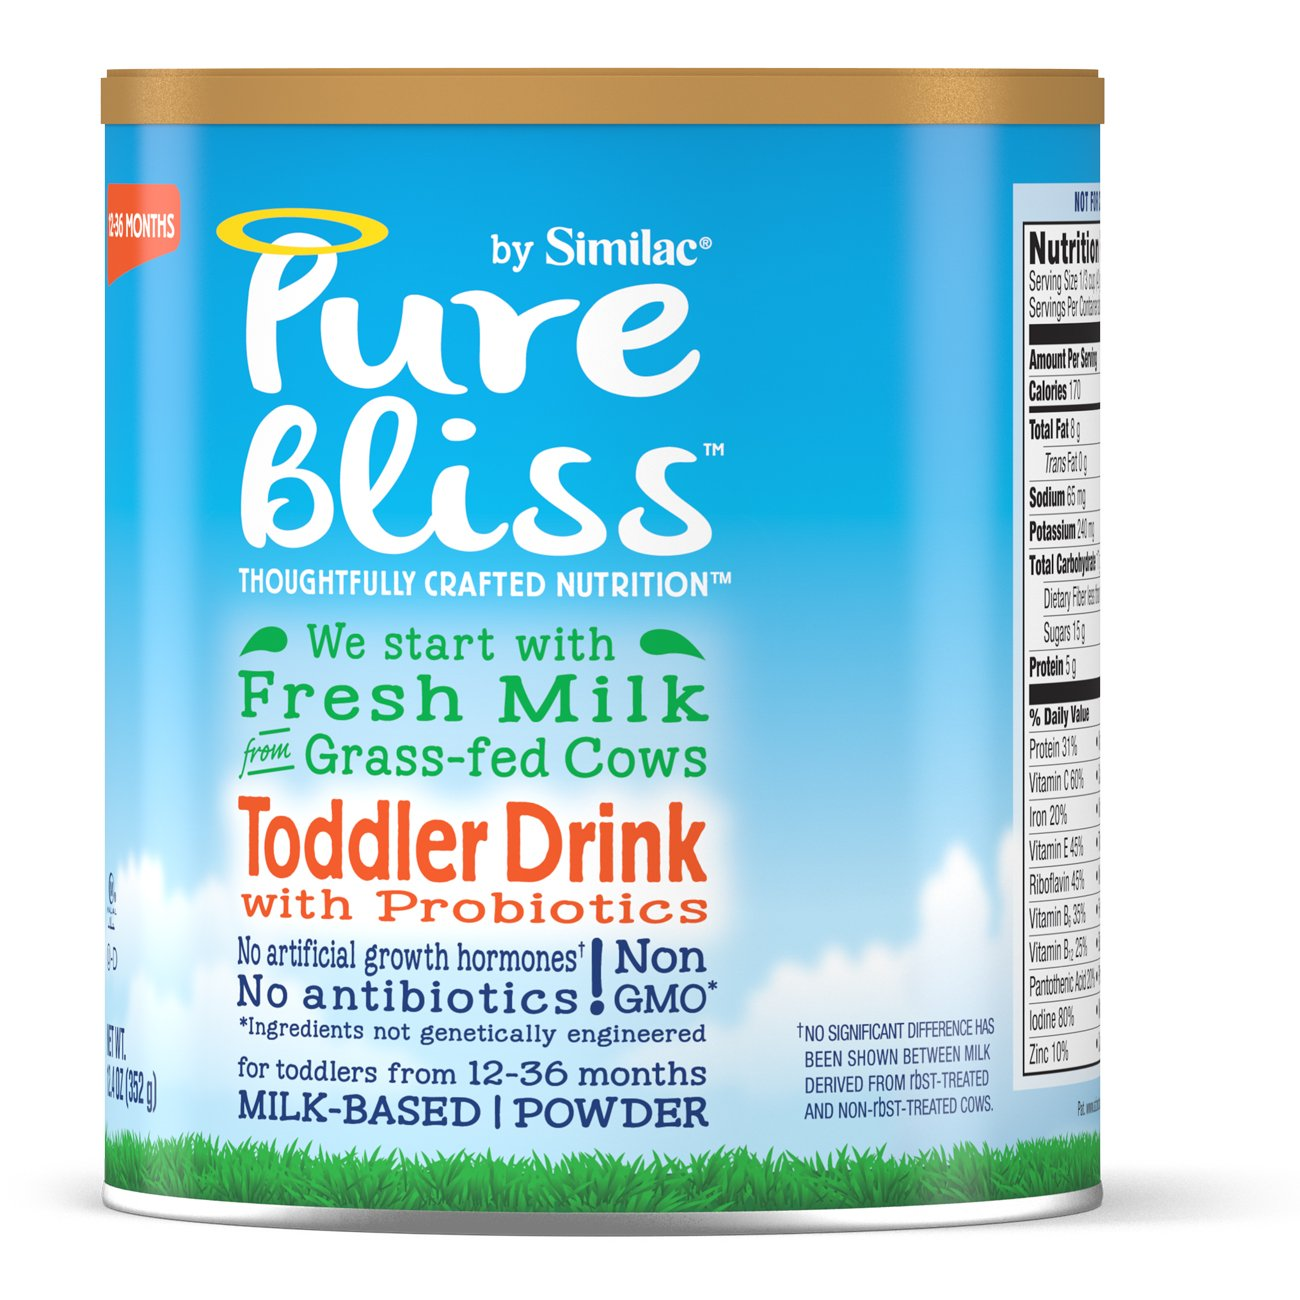 Pure Bliss by Similac Toddler Drink with Probiotics, Starts with Fresh Milk from Grass-Fed Cows, 12.4 ounces (Pack of 4) by Similac (Image #6)